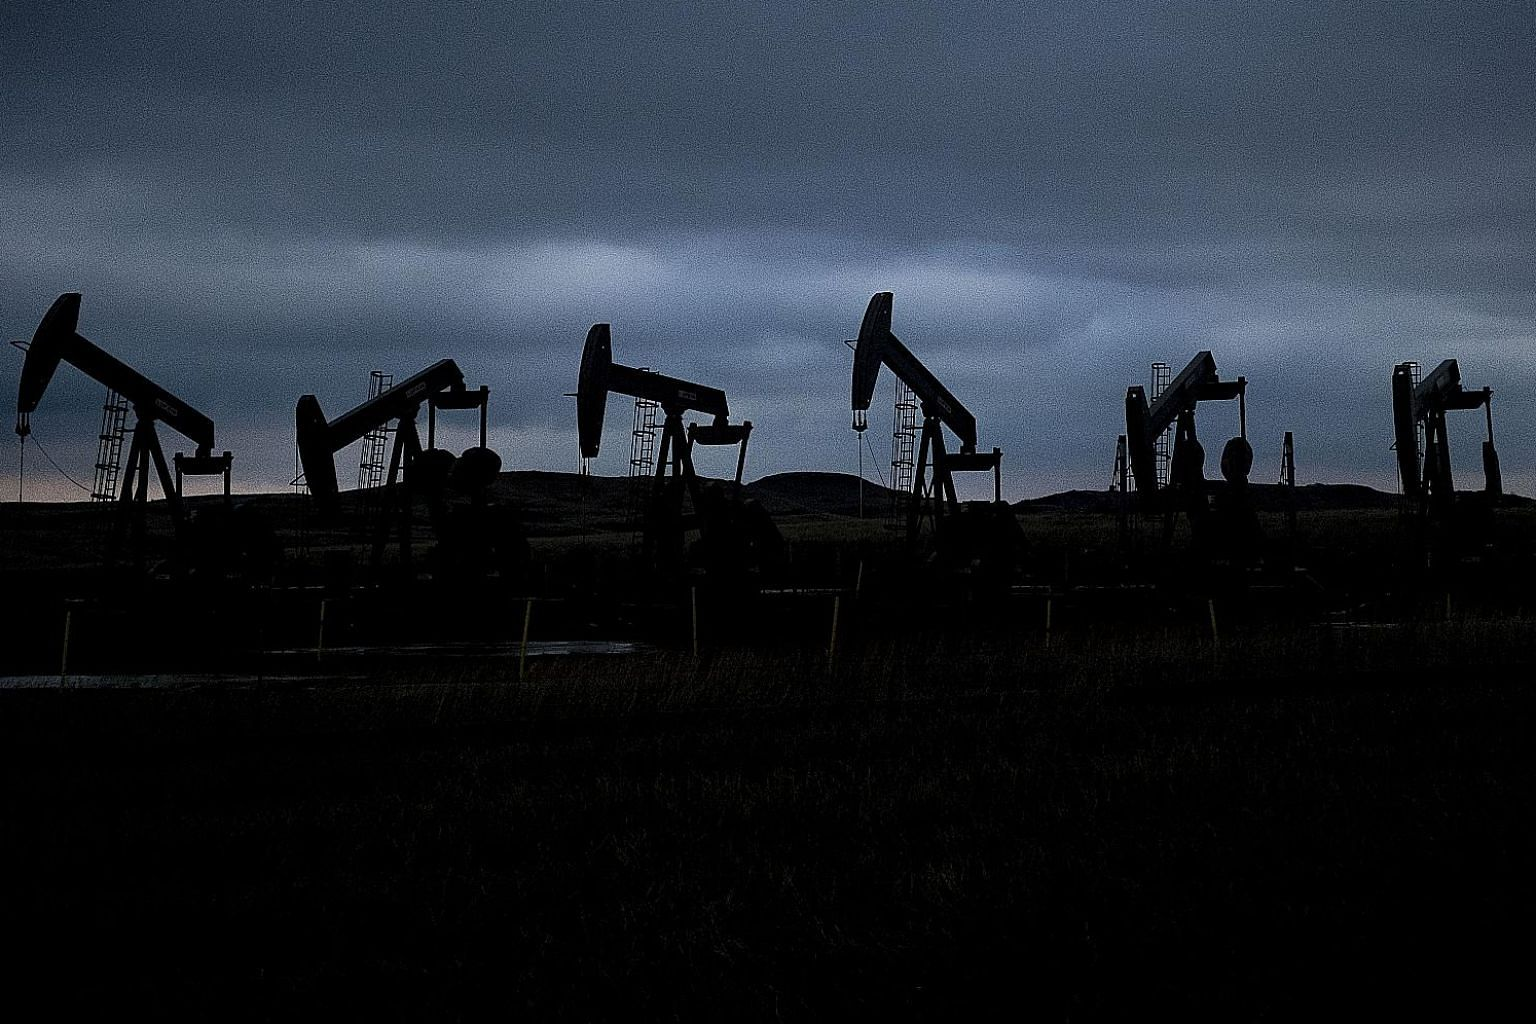 The median forecast from 24 oil analysts polled by Bloomberg projects London-traded Brent will average exactly US$70 a barrel next year. Thursday's price was about US$53.50, and this year's average has been about US$72 so far.